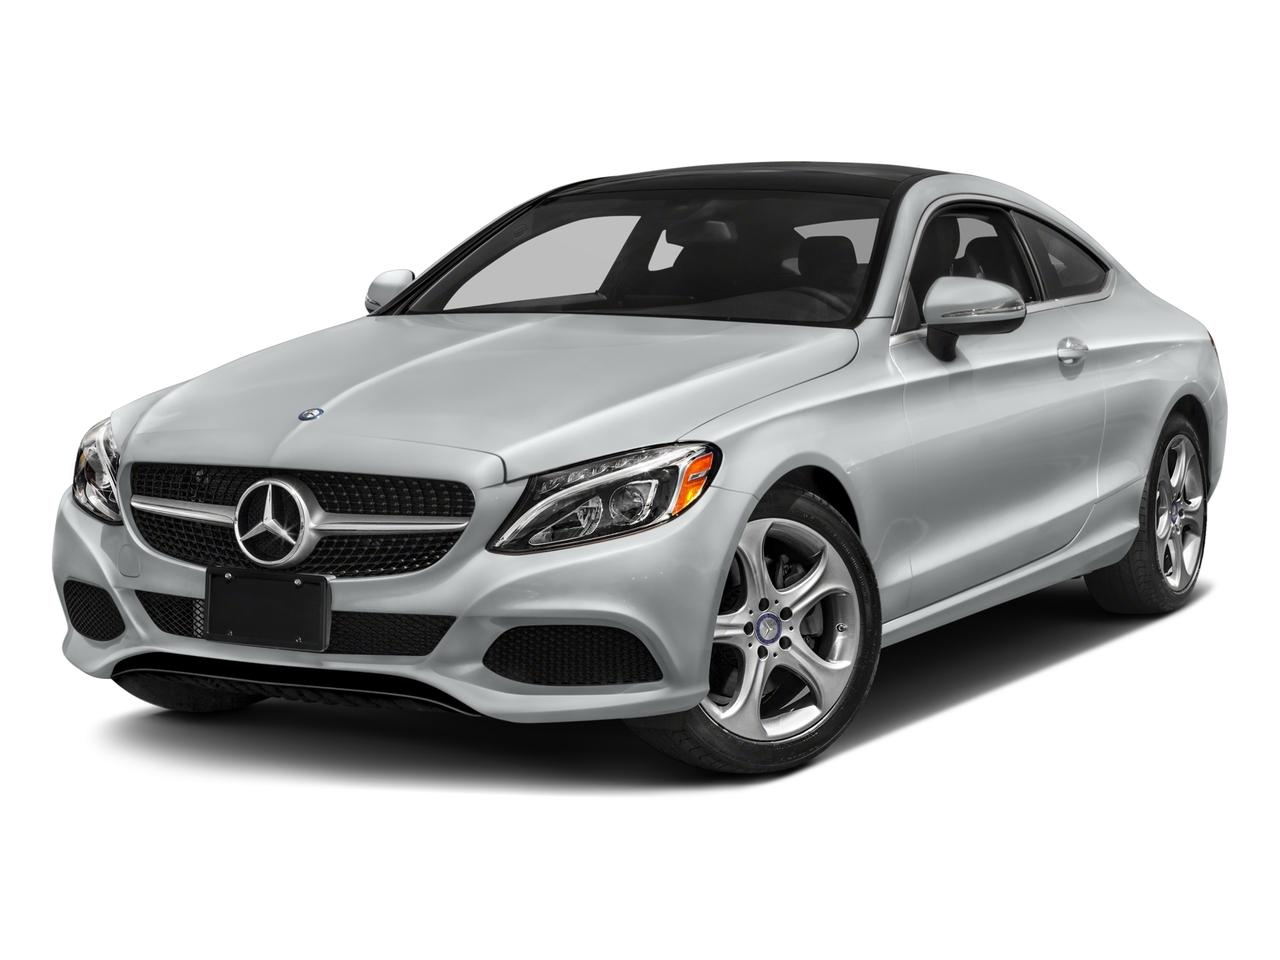 2017 Mercedes-Benz C-Class Vehicle Photo in Portland, OR 97225